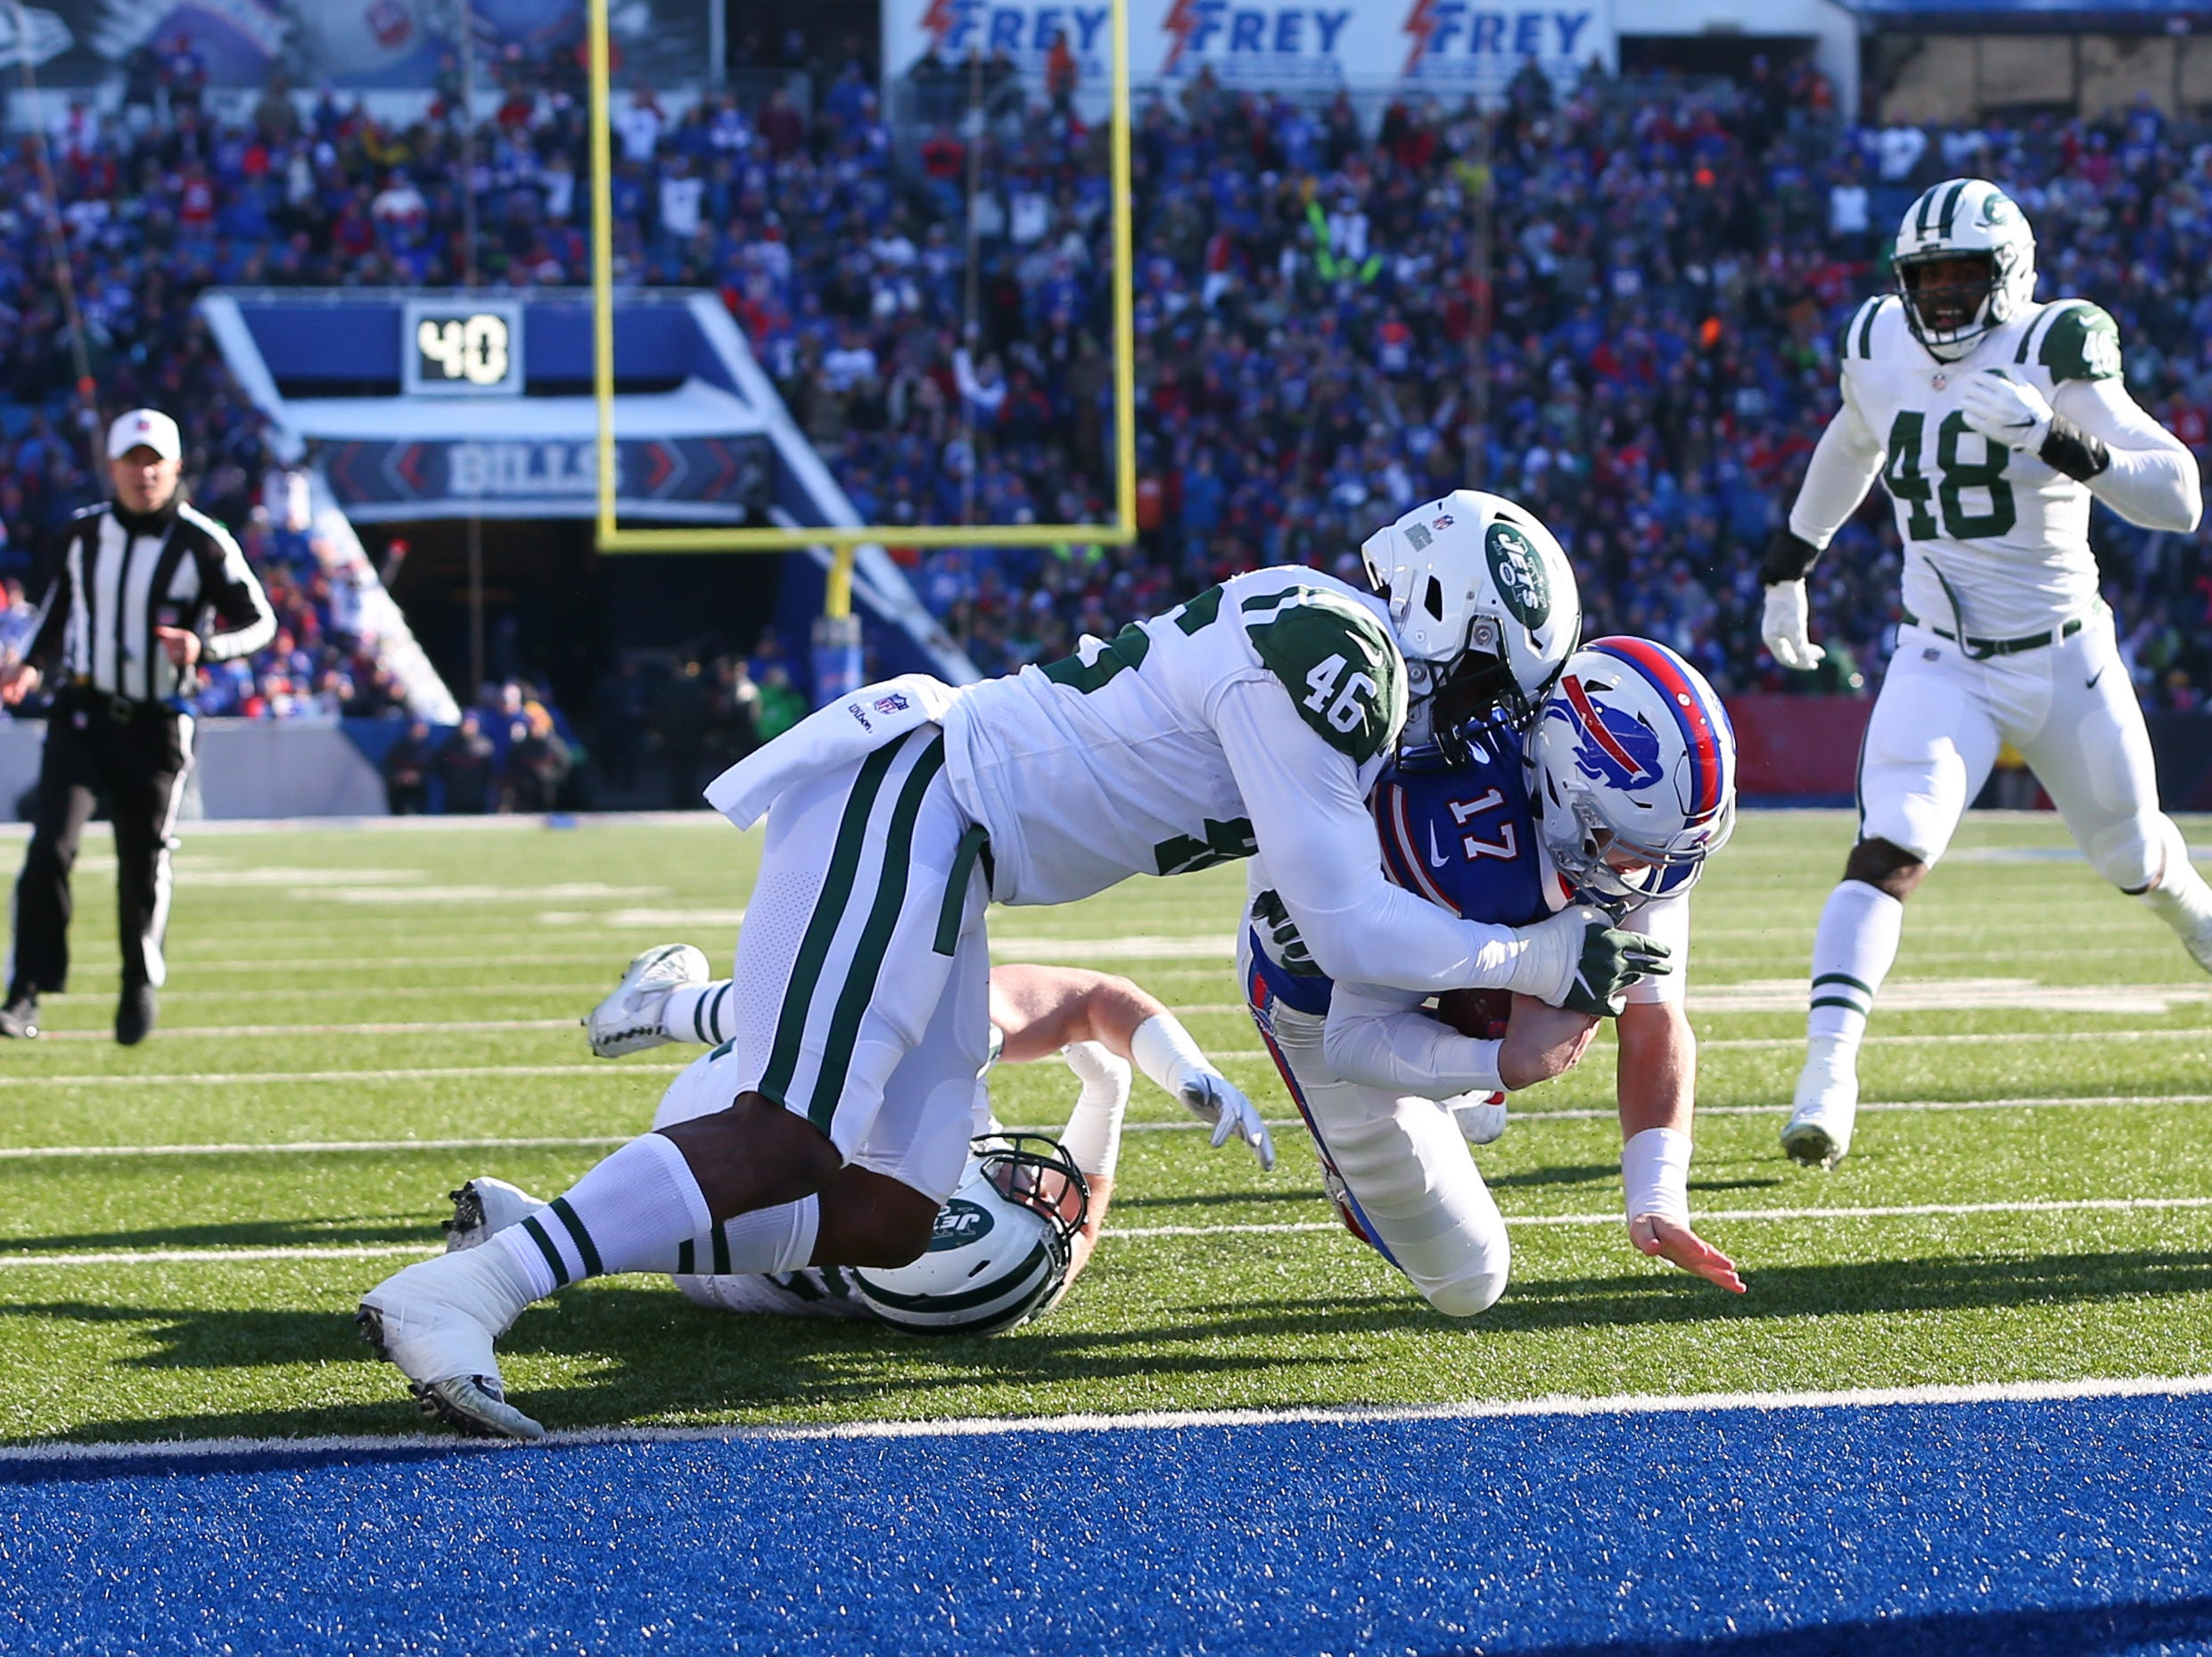 Dec 9, 2018; Orchard Park, NY, USA; Buffalo Bills quarterback Josh Allen (17) dives into the end zone for a touchdown as New York Jets linebacker Neville Hewitt (46) defends during the first quarter at New Era Field. Mandatory Credit: Rich Barnes-USA TODAY Sports